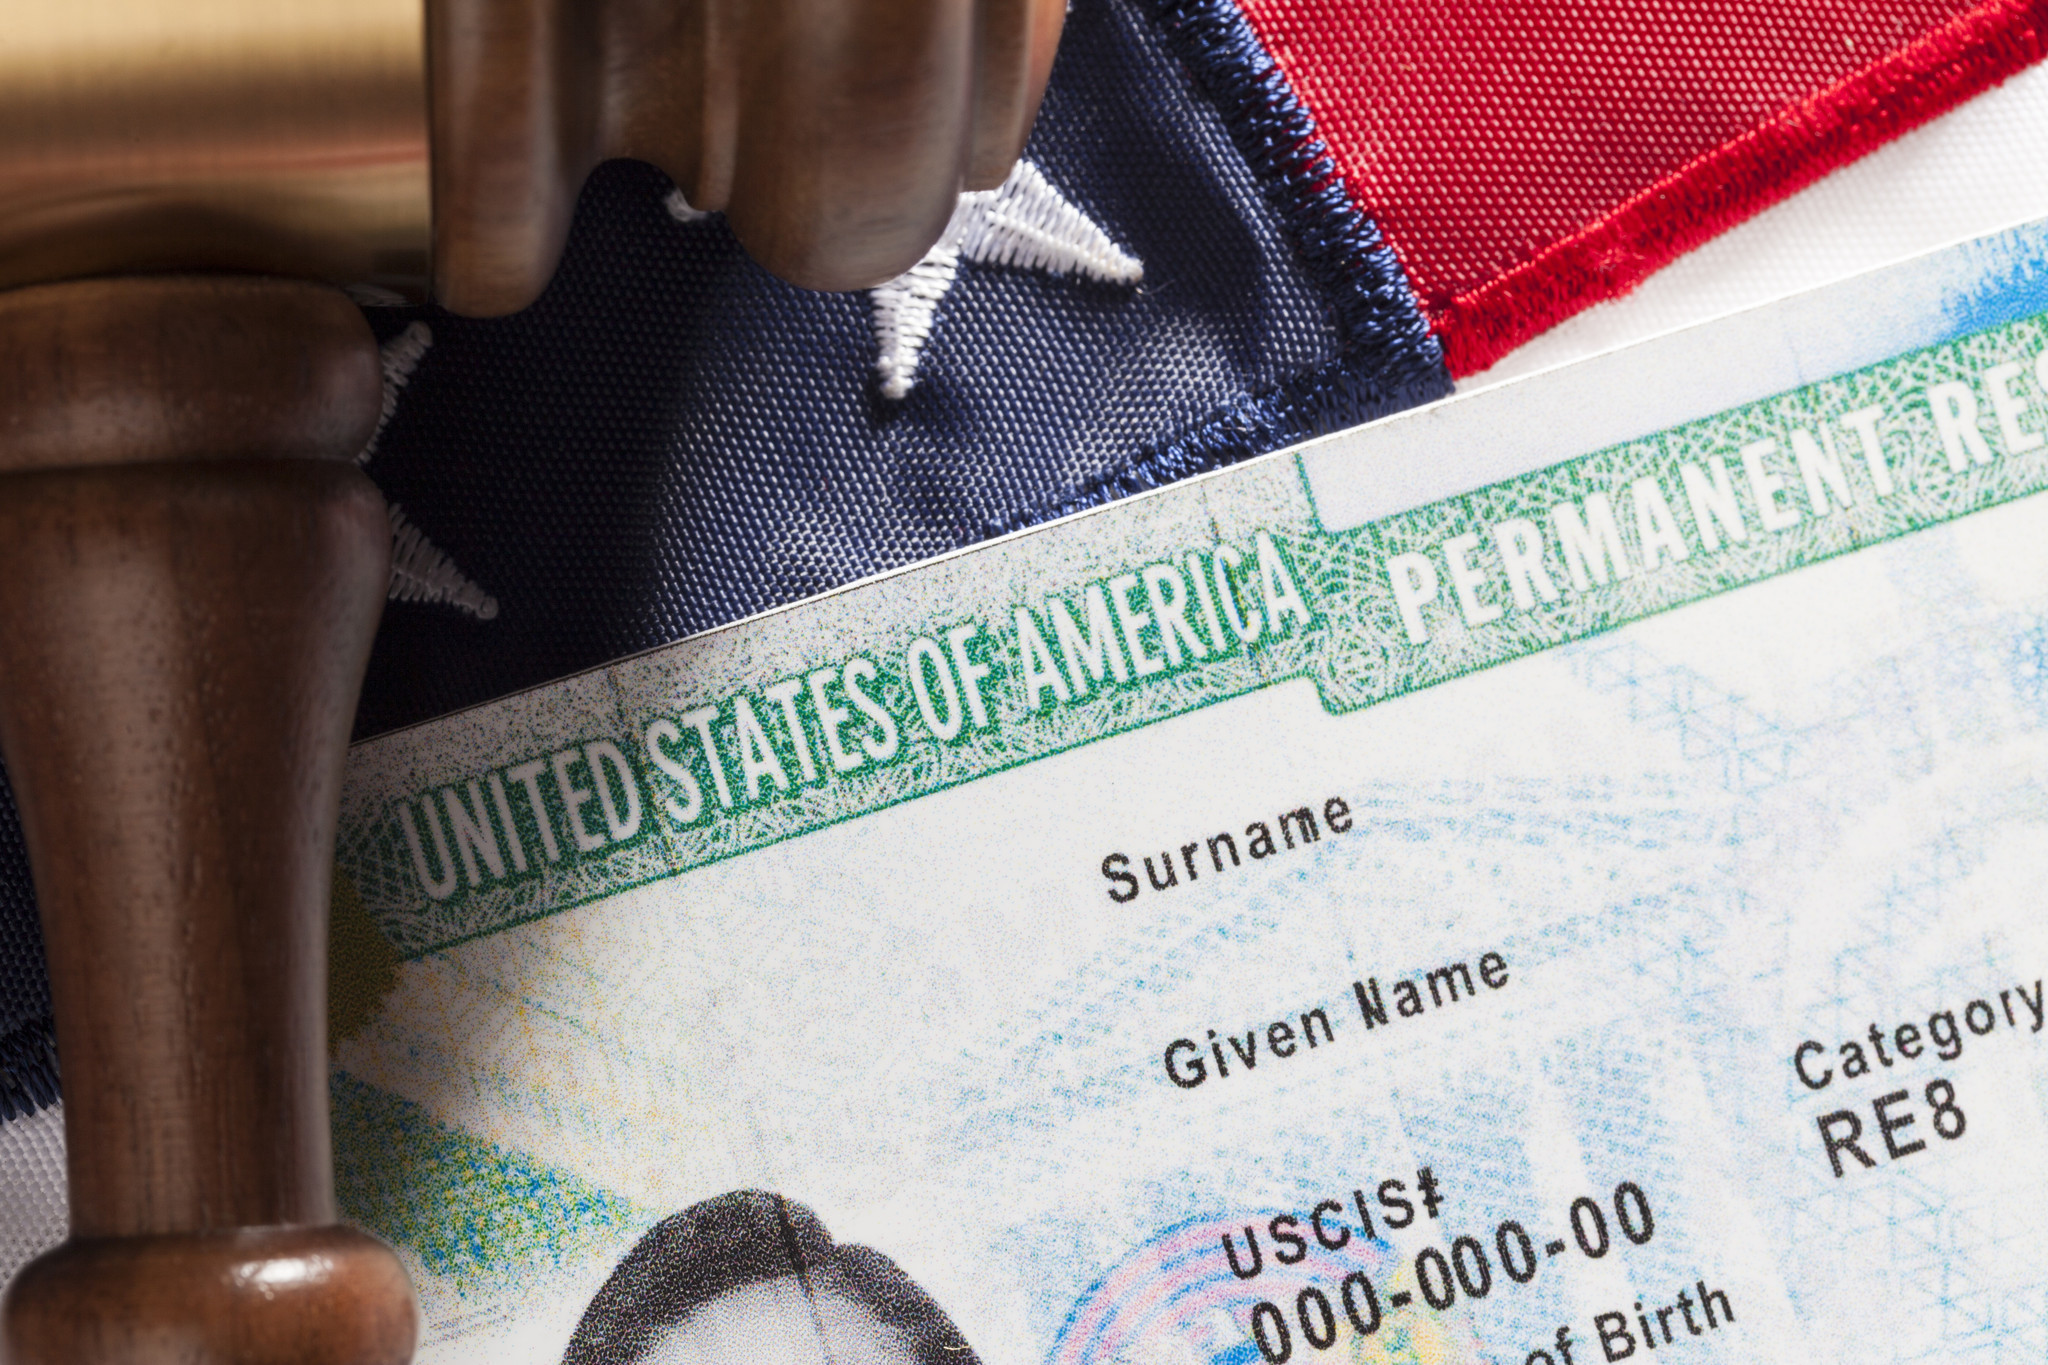 Unemployed citizen may need affidavit to get his wife a green card   New York Daily News